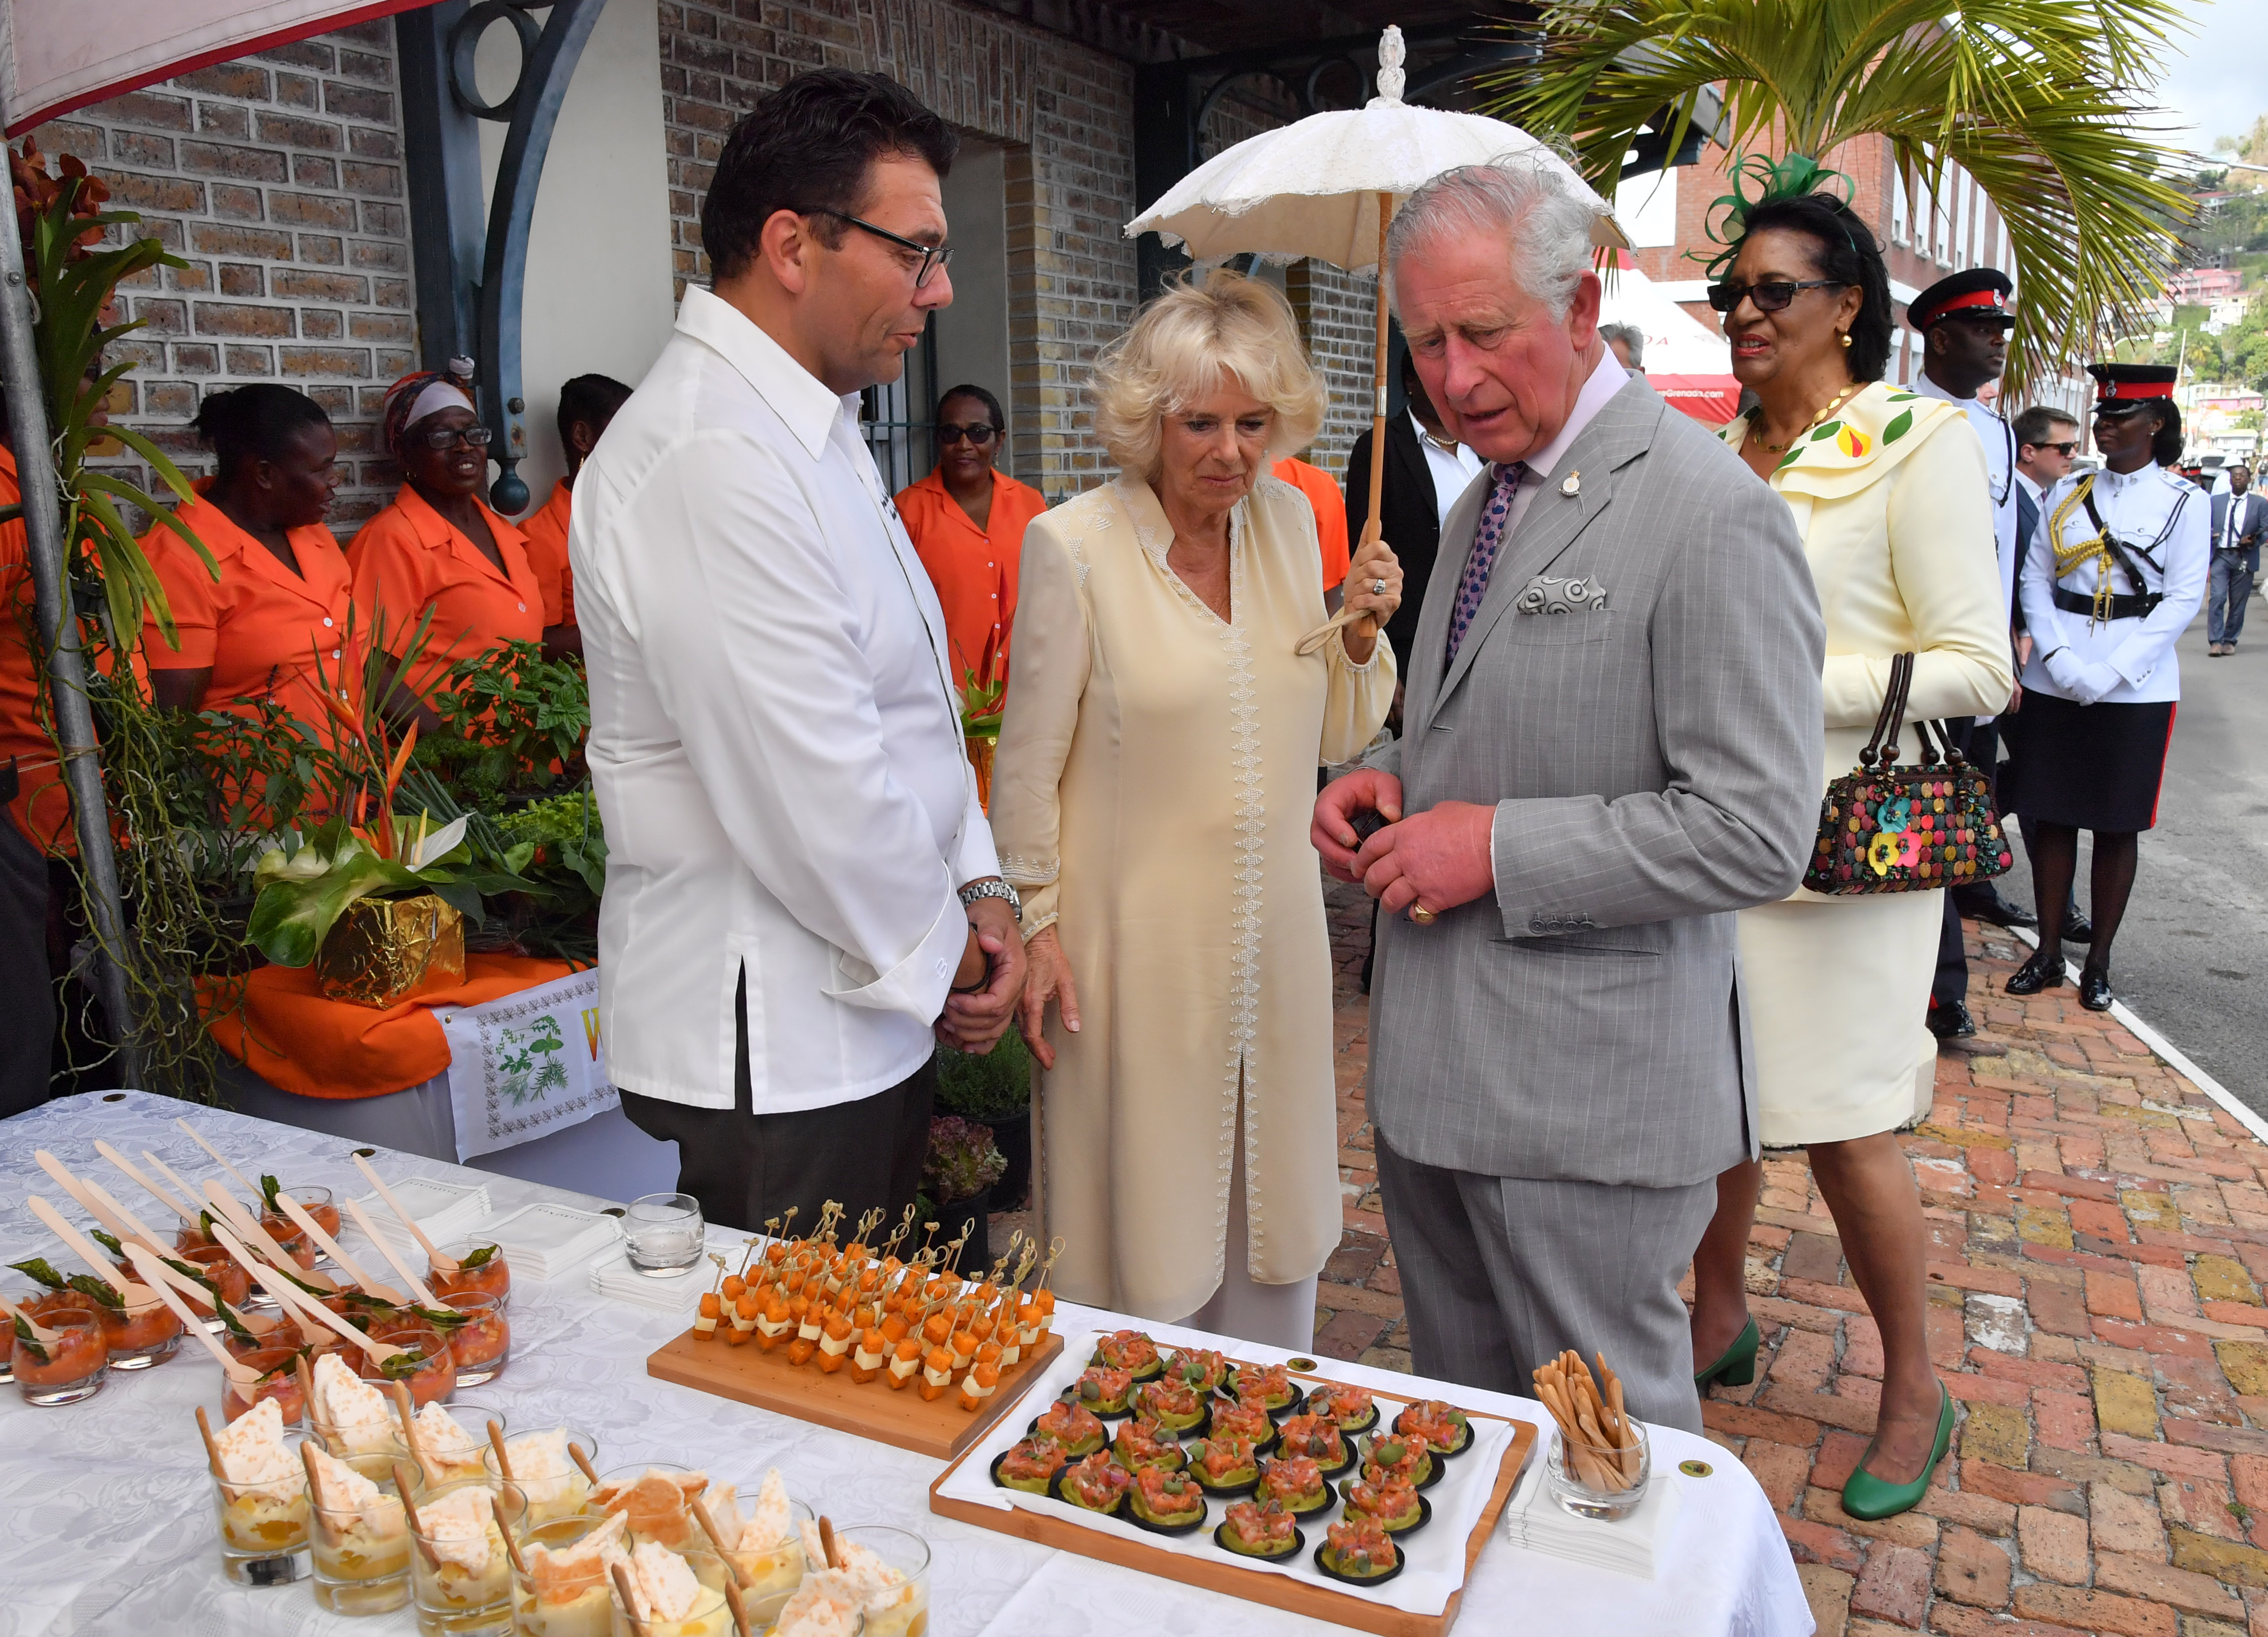 Prince Charles, Prince of Wales and Camilla, Duchess of Cornwall visit a market during their visit to Grenada on March 23, 2019 in Saint George's, Grenada.(Photo by Arthur Edwards - WPA Pool/Getty Images)